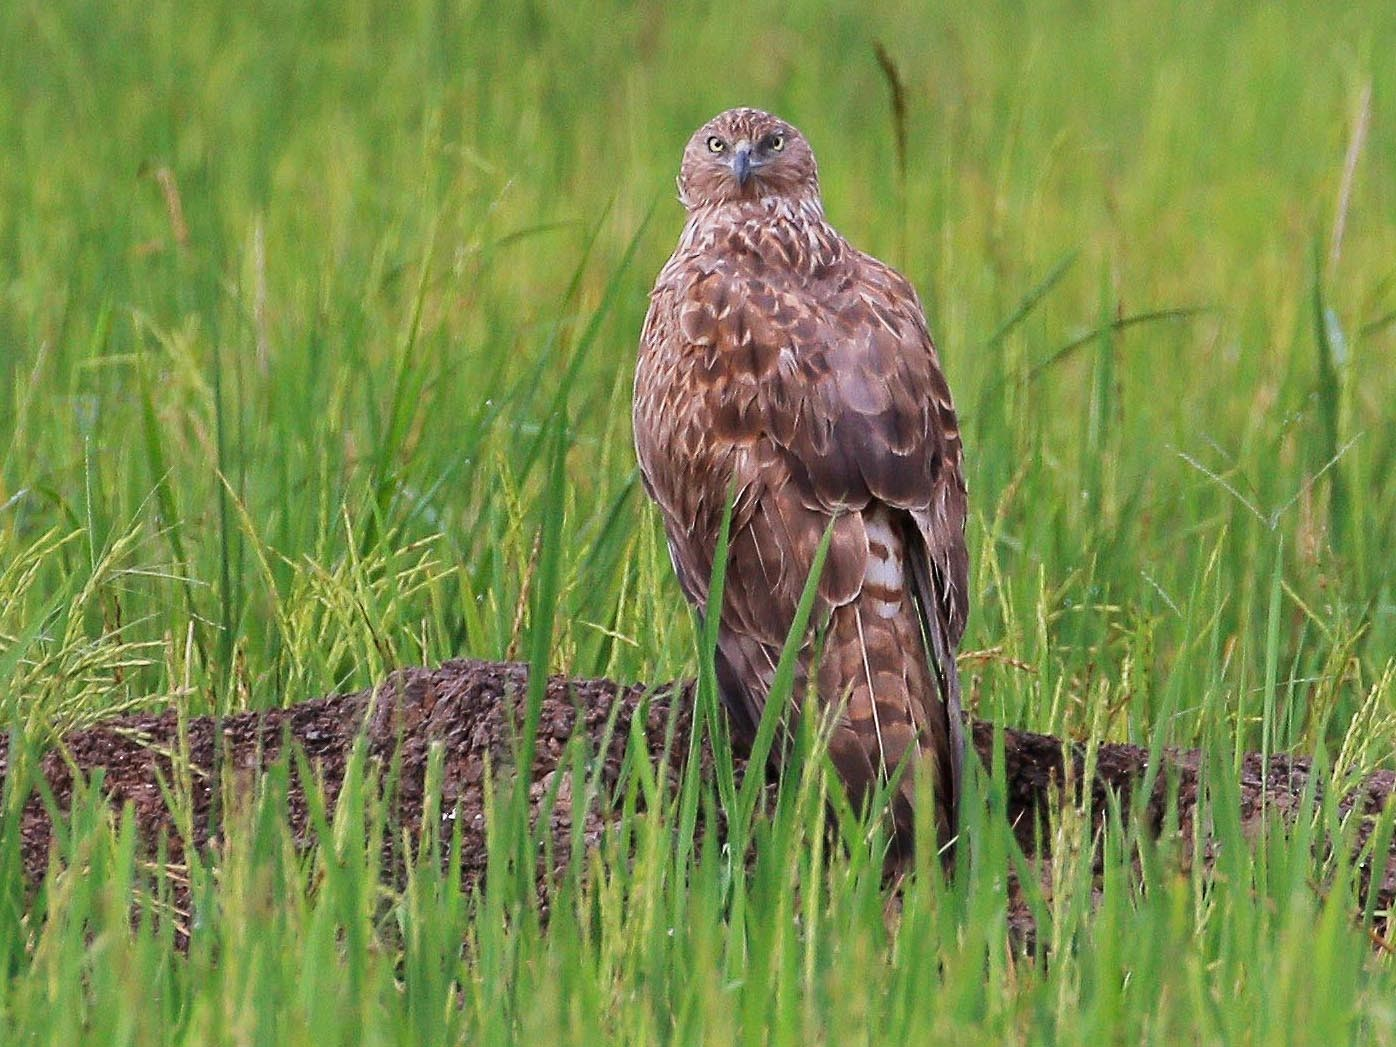 Eastern Marsh-Harrier - Neoh Hor Kee